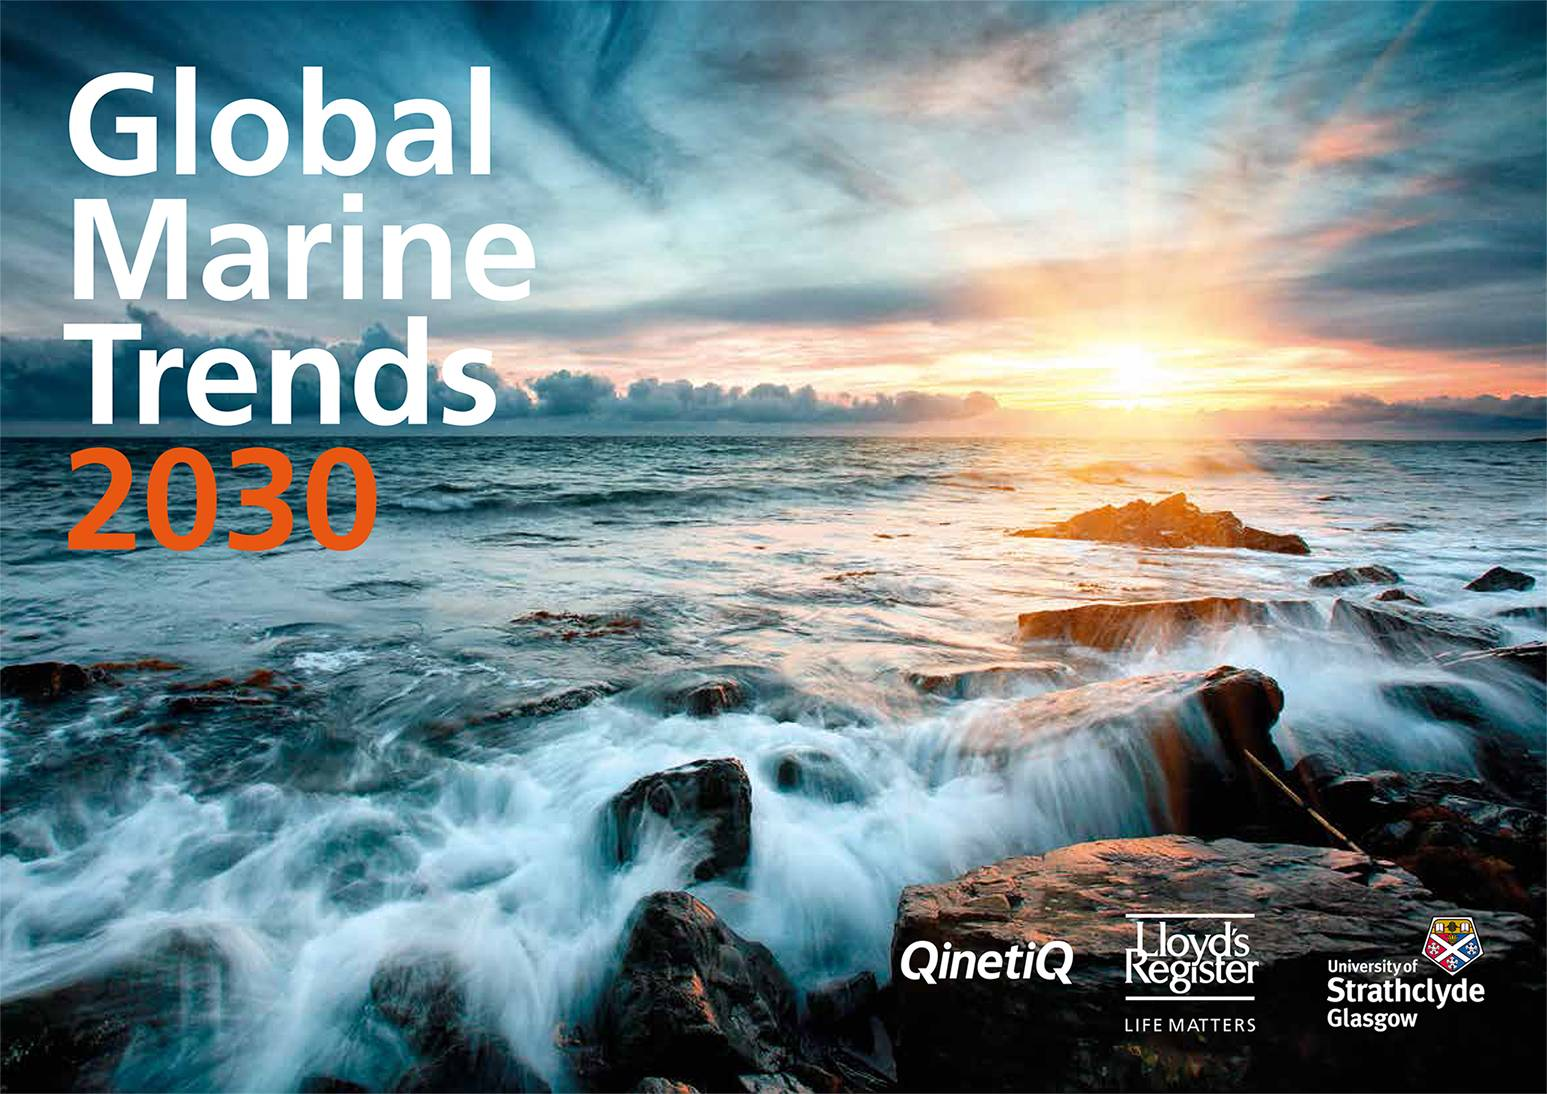 Global Marine Trends 2030 cover.jpg